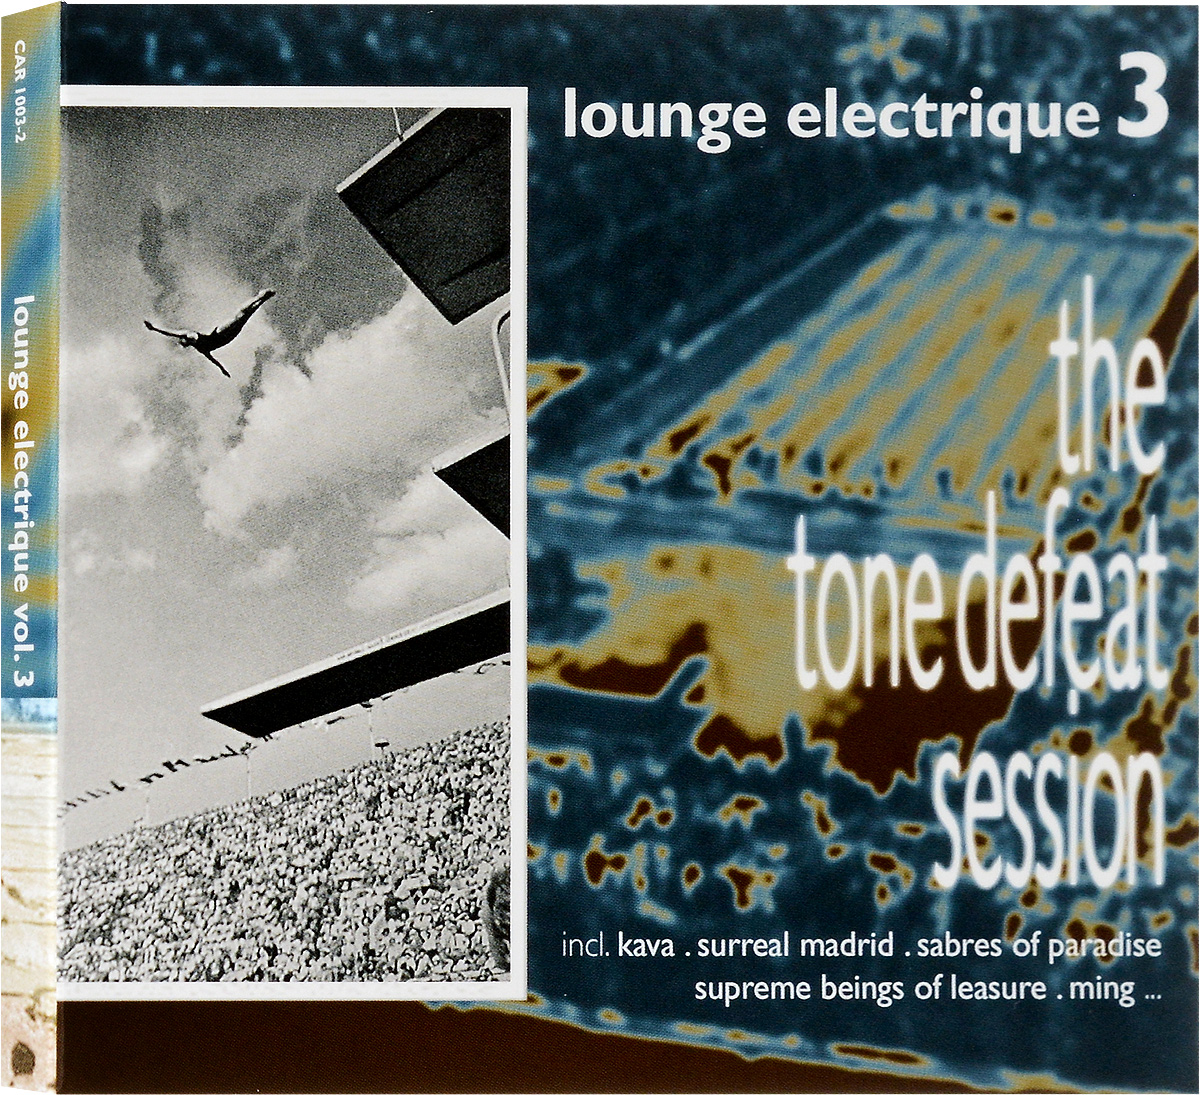 Wax Poetric,Liquid Loop,Marzenka,Org Lounge,Eastenders,Sabred Of Paradise,Doing Time,Surreal Madrid,Kava Kava,Ming Lounge Electrique. Vol. 3 madrid lounge chair